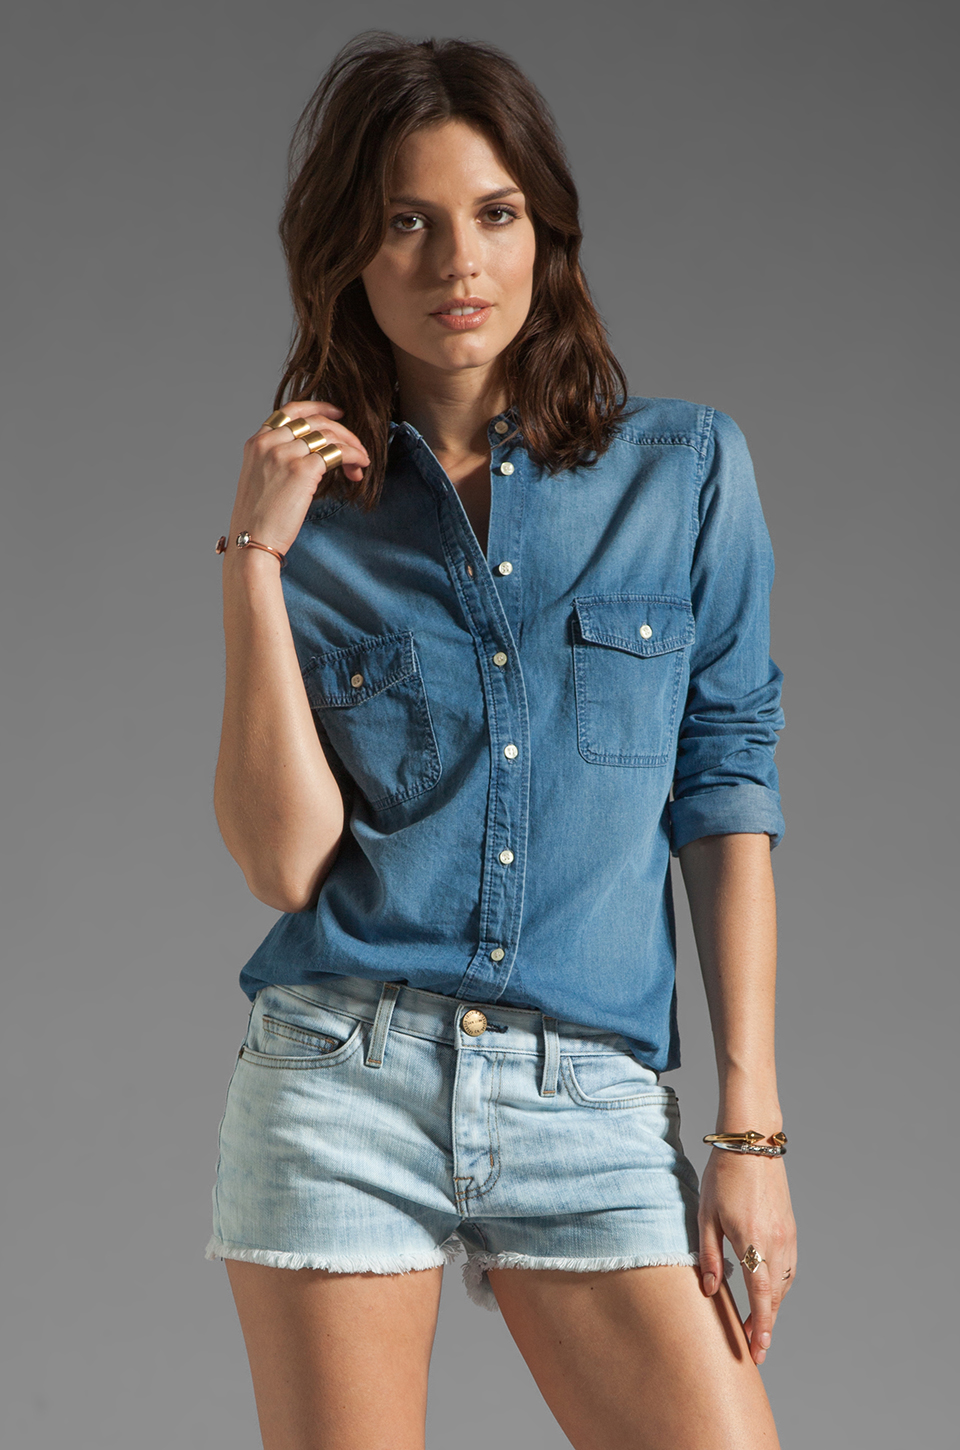 Dakota Collective Ellery Denim Shirt in Light Marble